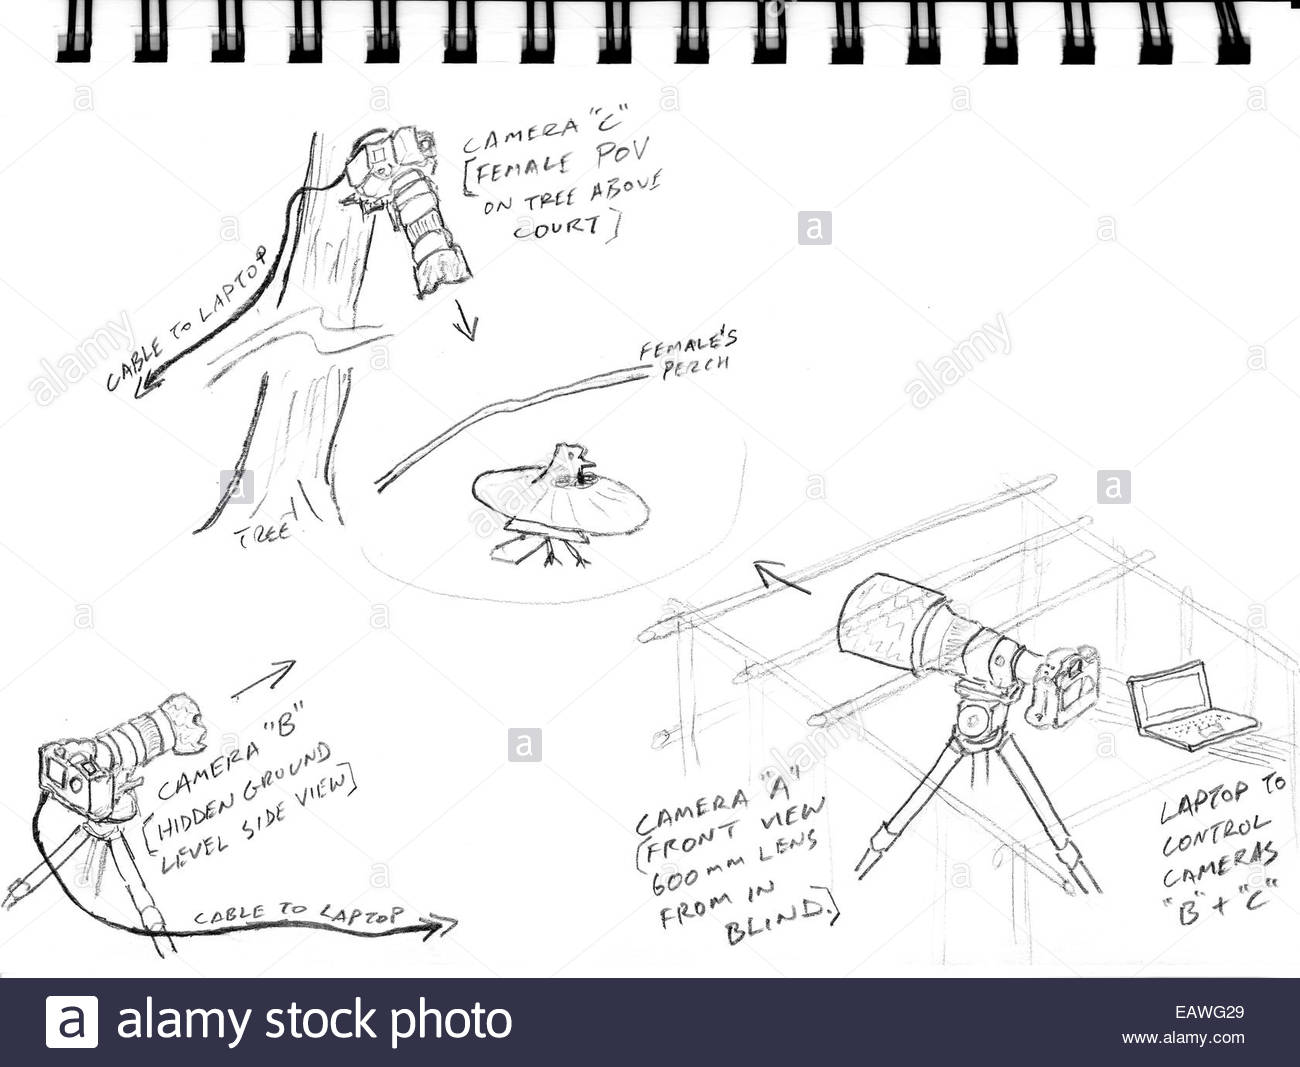 Diagram of a photographer's three camera setup to capture a parotia's courtship display. - Stock Image